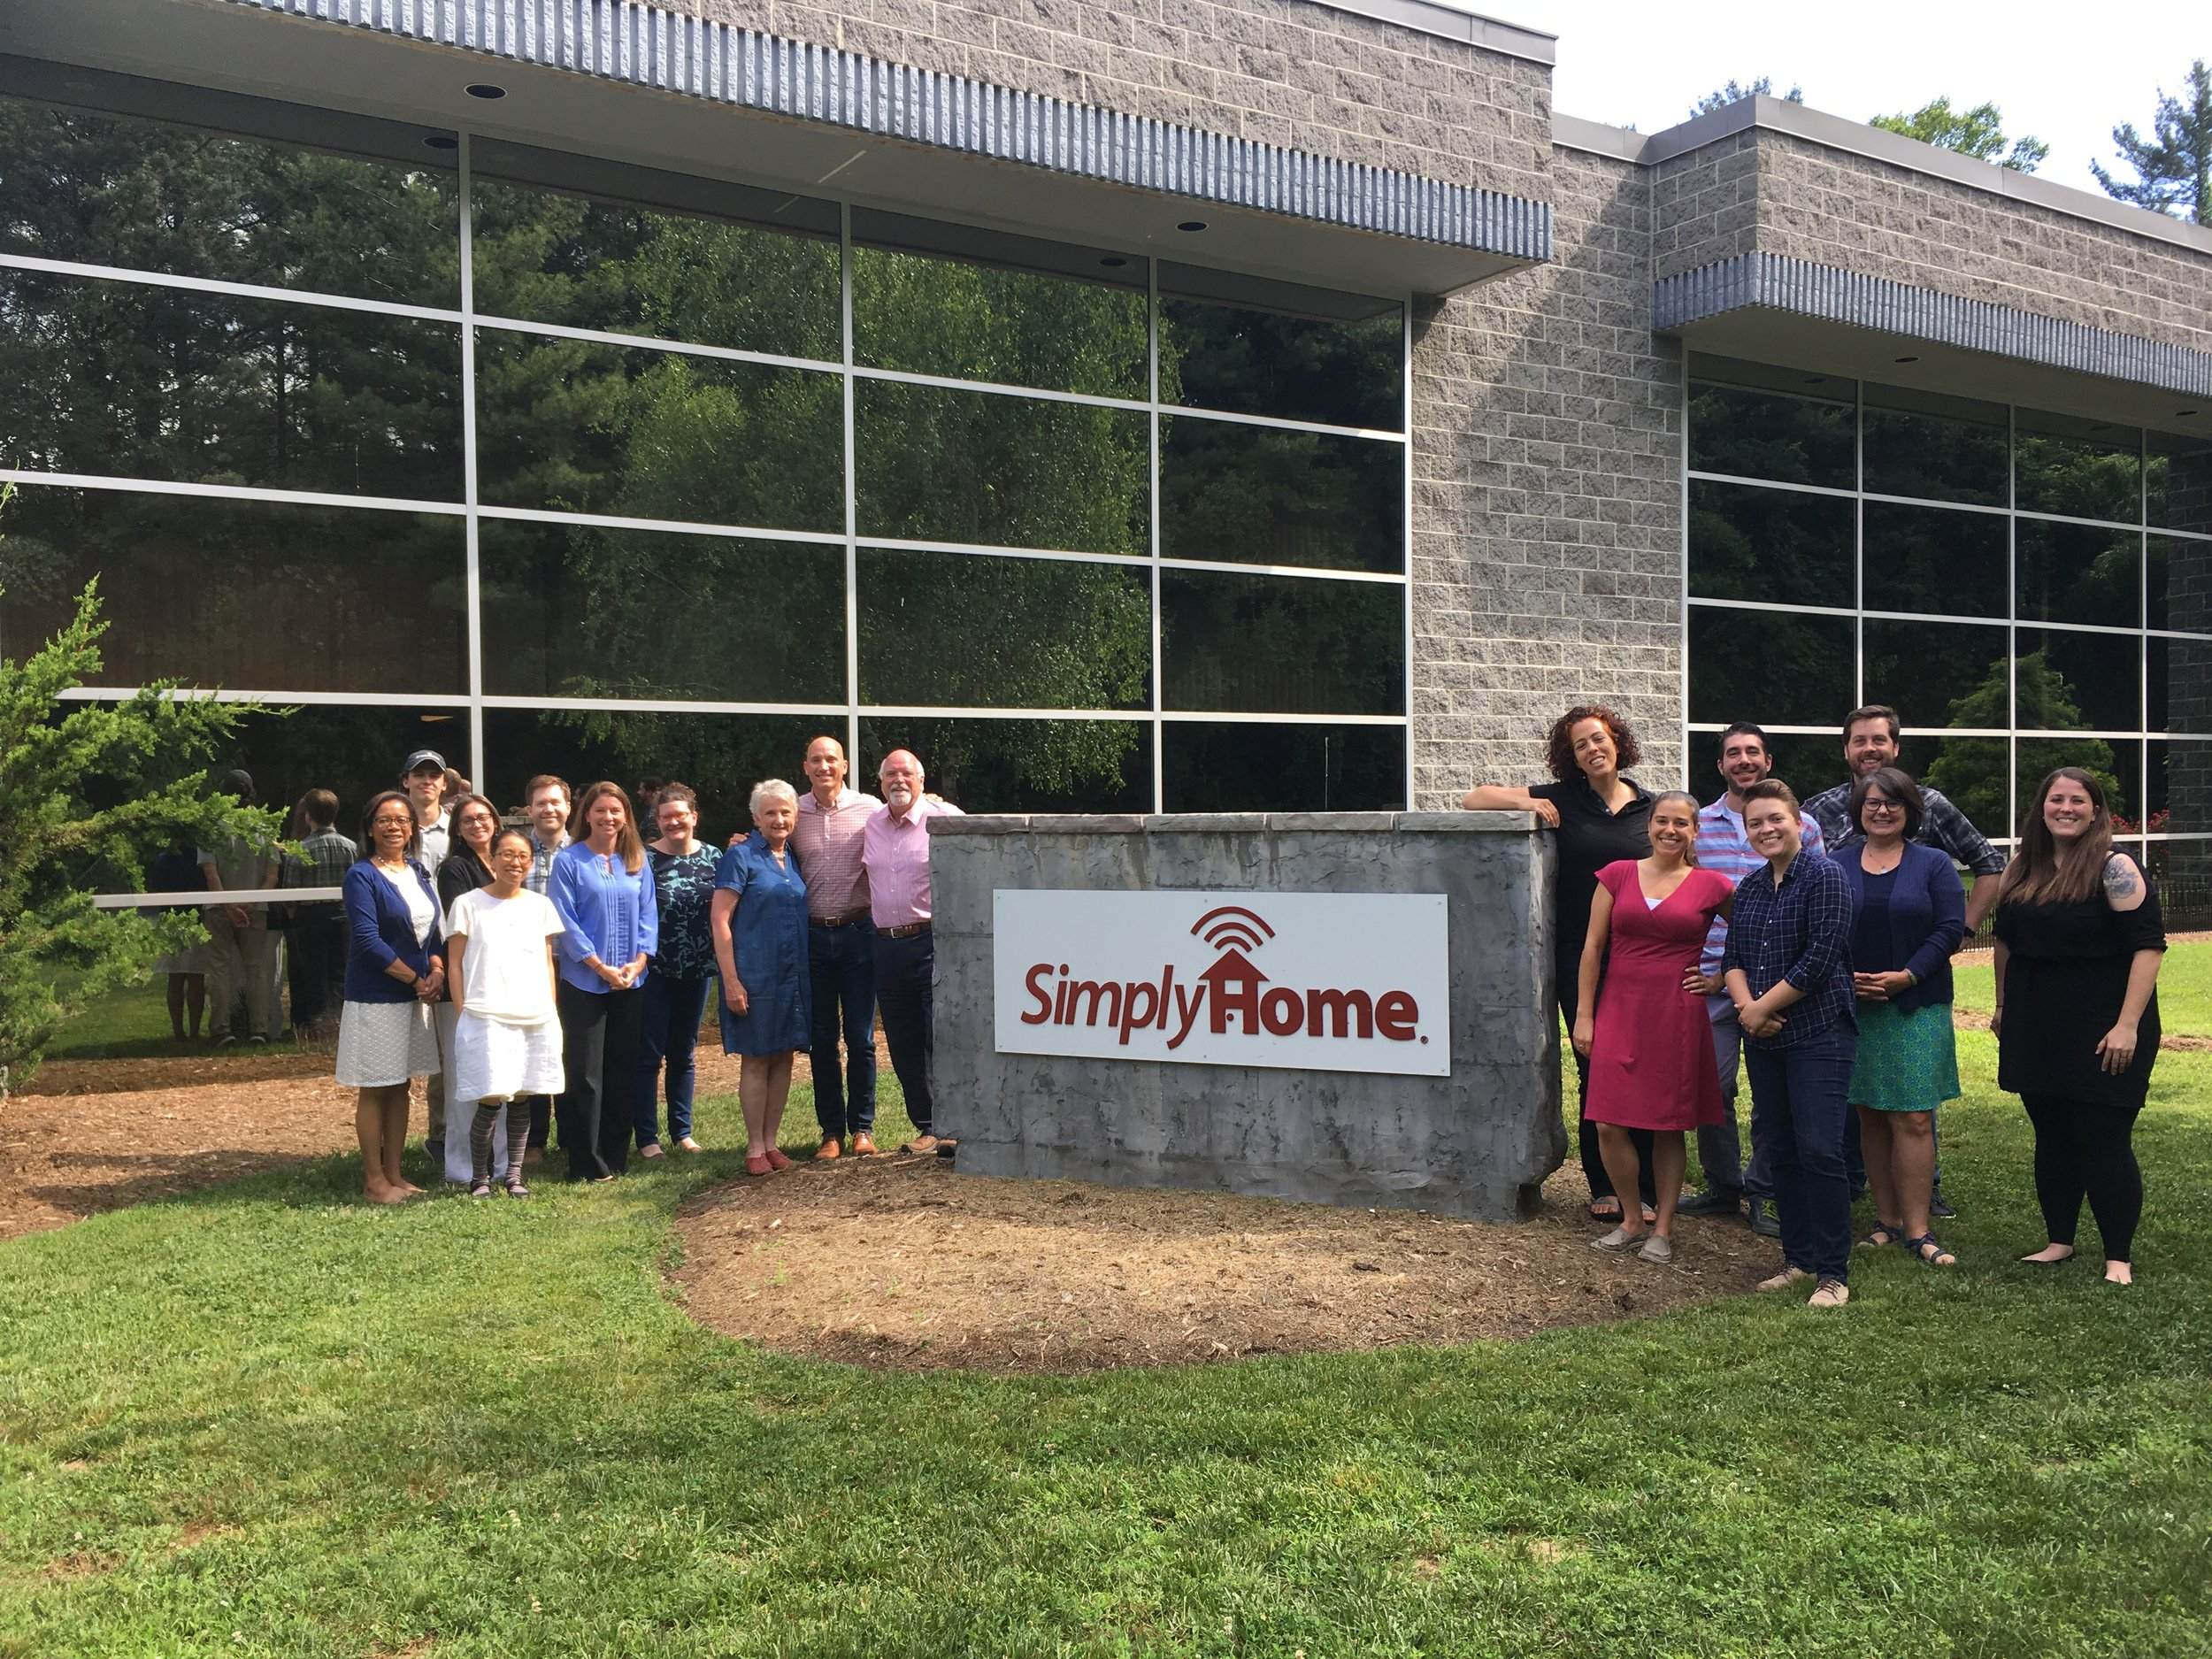 Members of the SimplyHome team pose for a picture outside the company's Asheville offices.